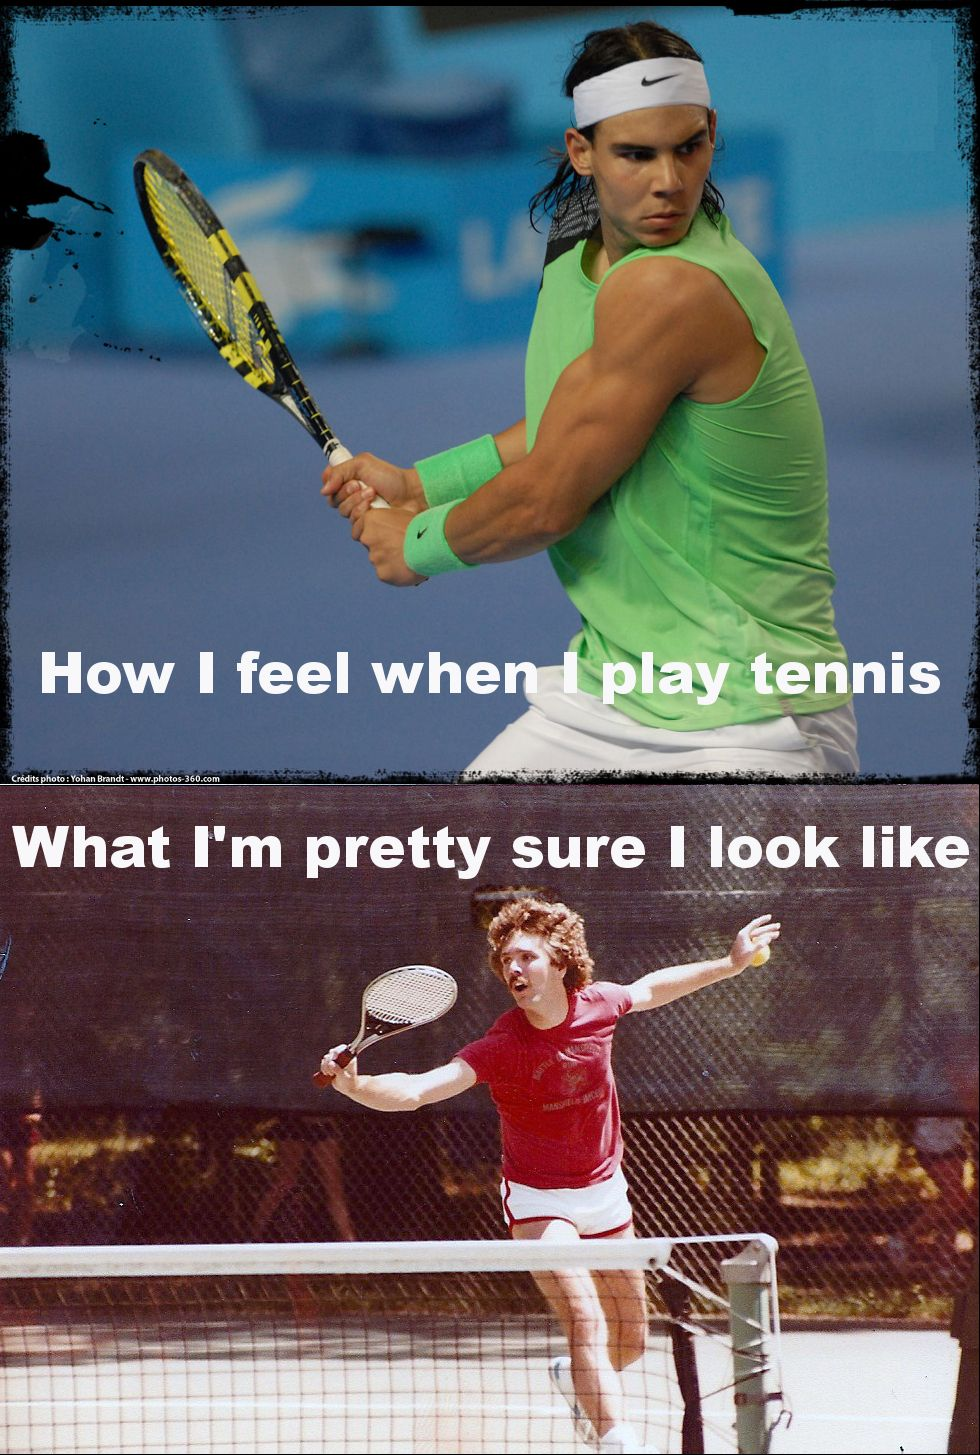 Phil Fishbein Ha Ha Ha Ha Zander Agrees I Look Like This But With Better Hair Lol Tennis Funny Tennis Quotes Play Tennis